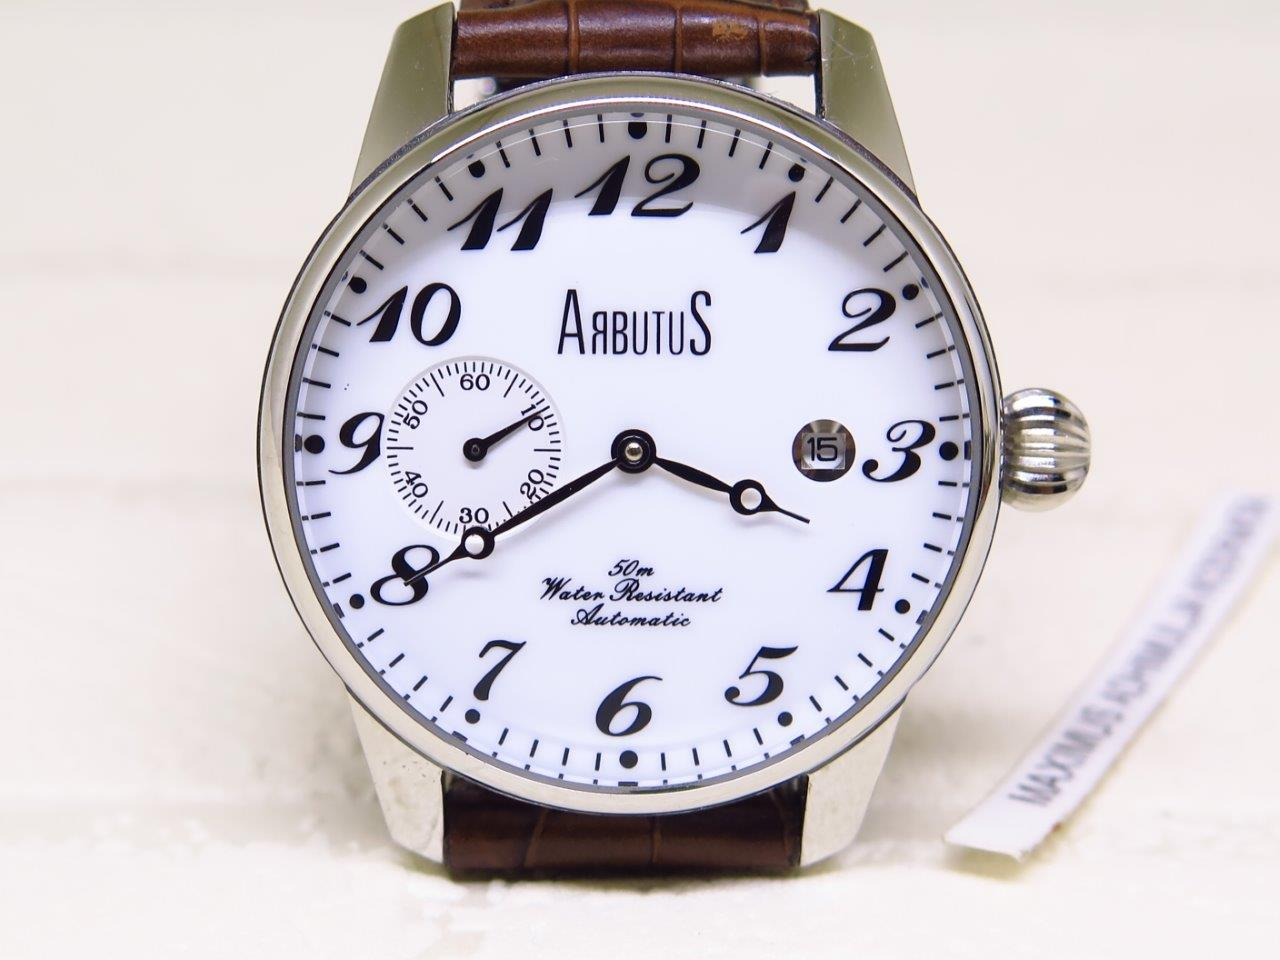 ARBUTUS WHITE NUMERAL DIAL SUB SECON - AUTOMATIC